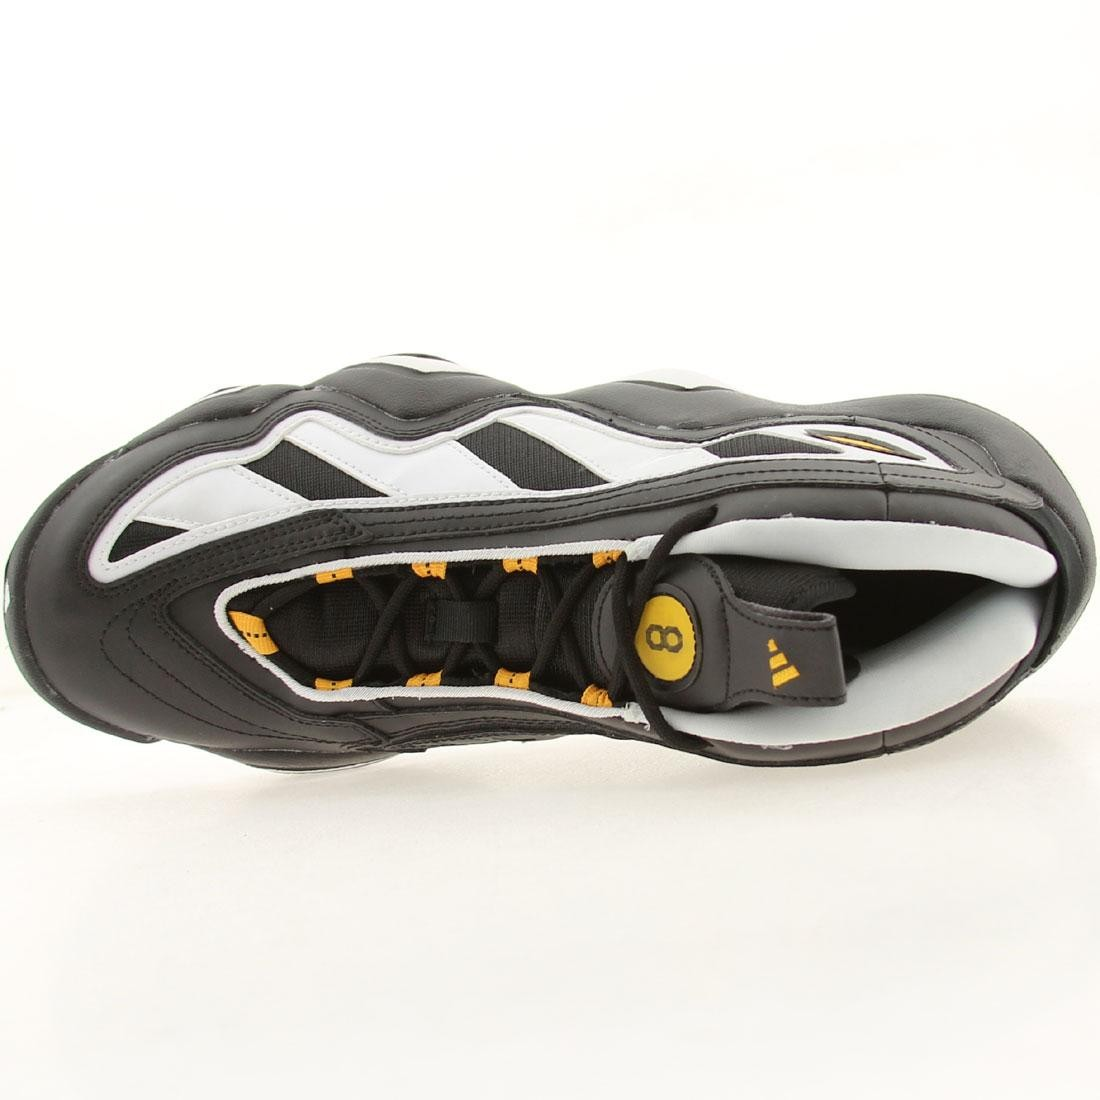 45cda82d2cd7 Adidas Men Crazy 97 EQT Elevation Retro - Kobe Bryant (black   runninwhite    golsld)